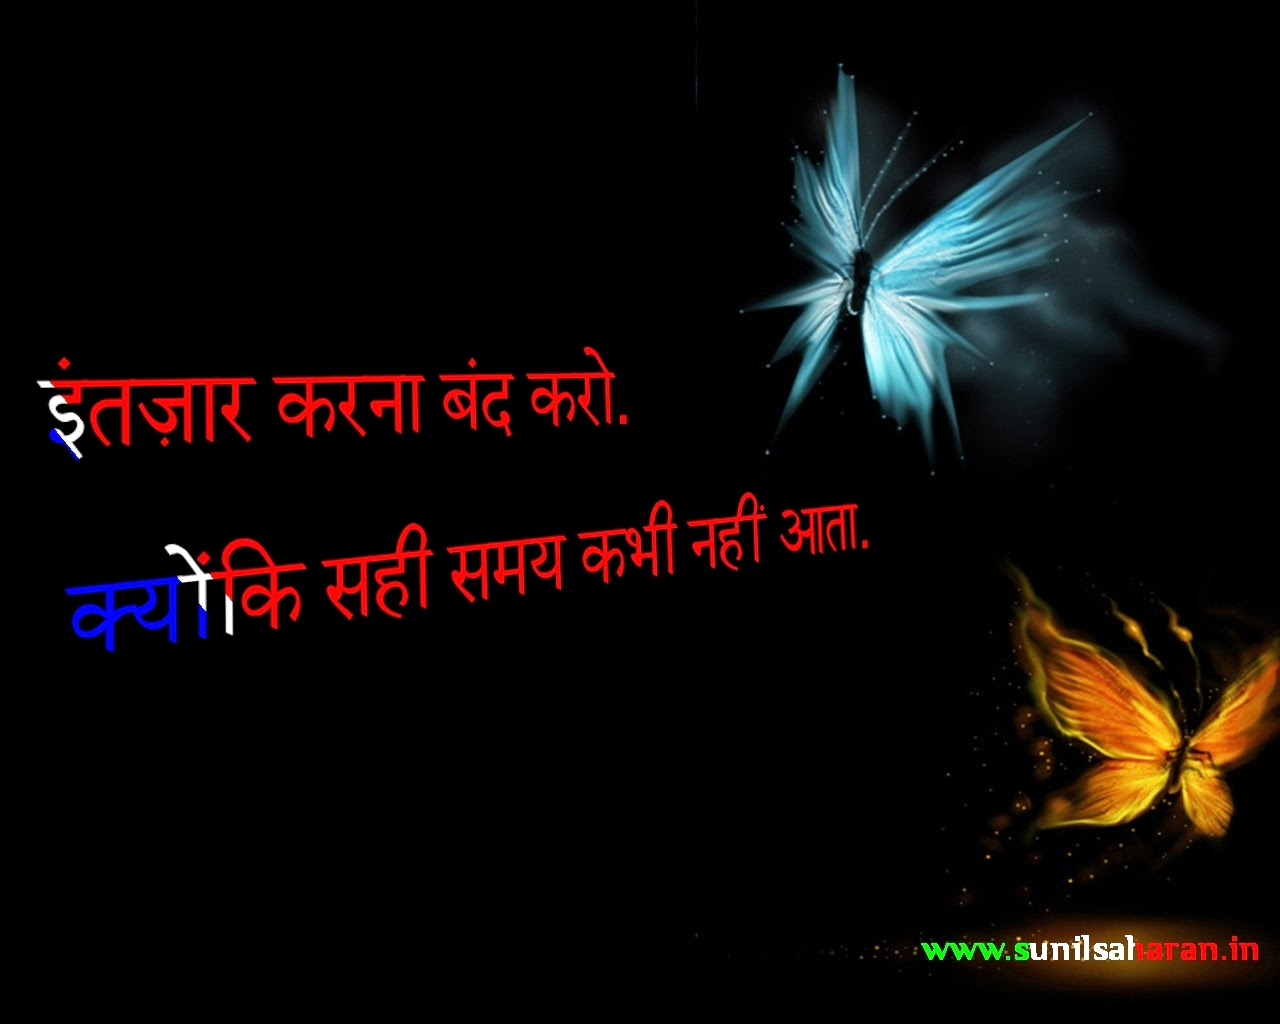 Quotes On Life In Hindi Wallpapers Hindi Inspirational quote